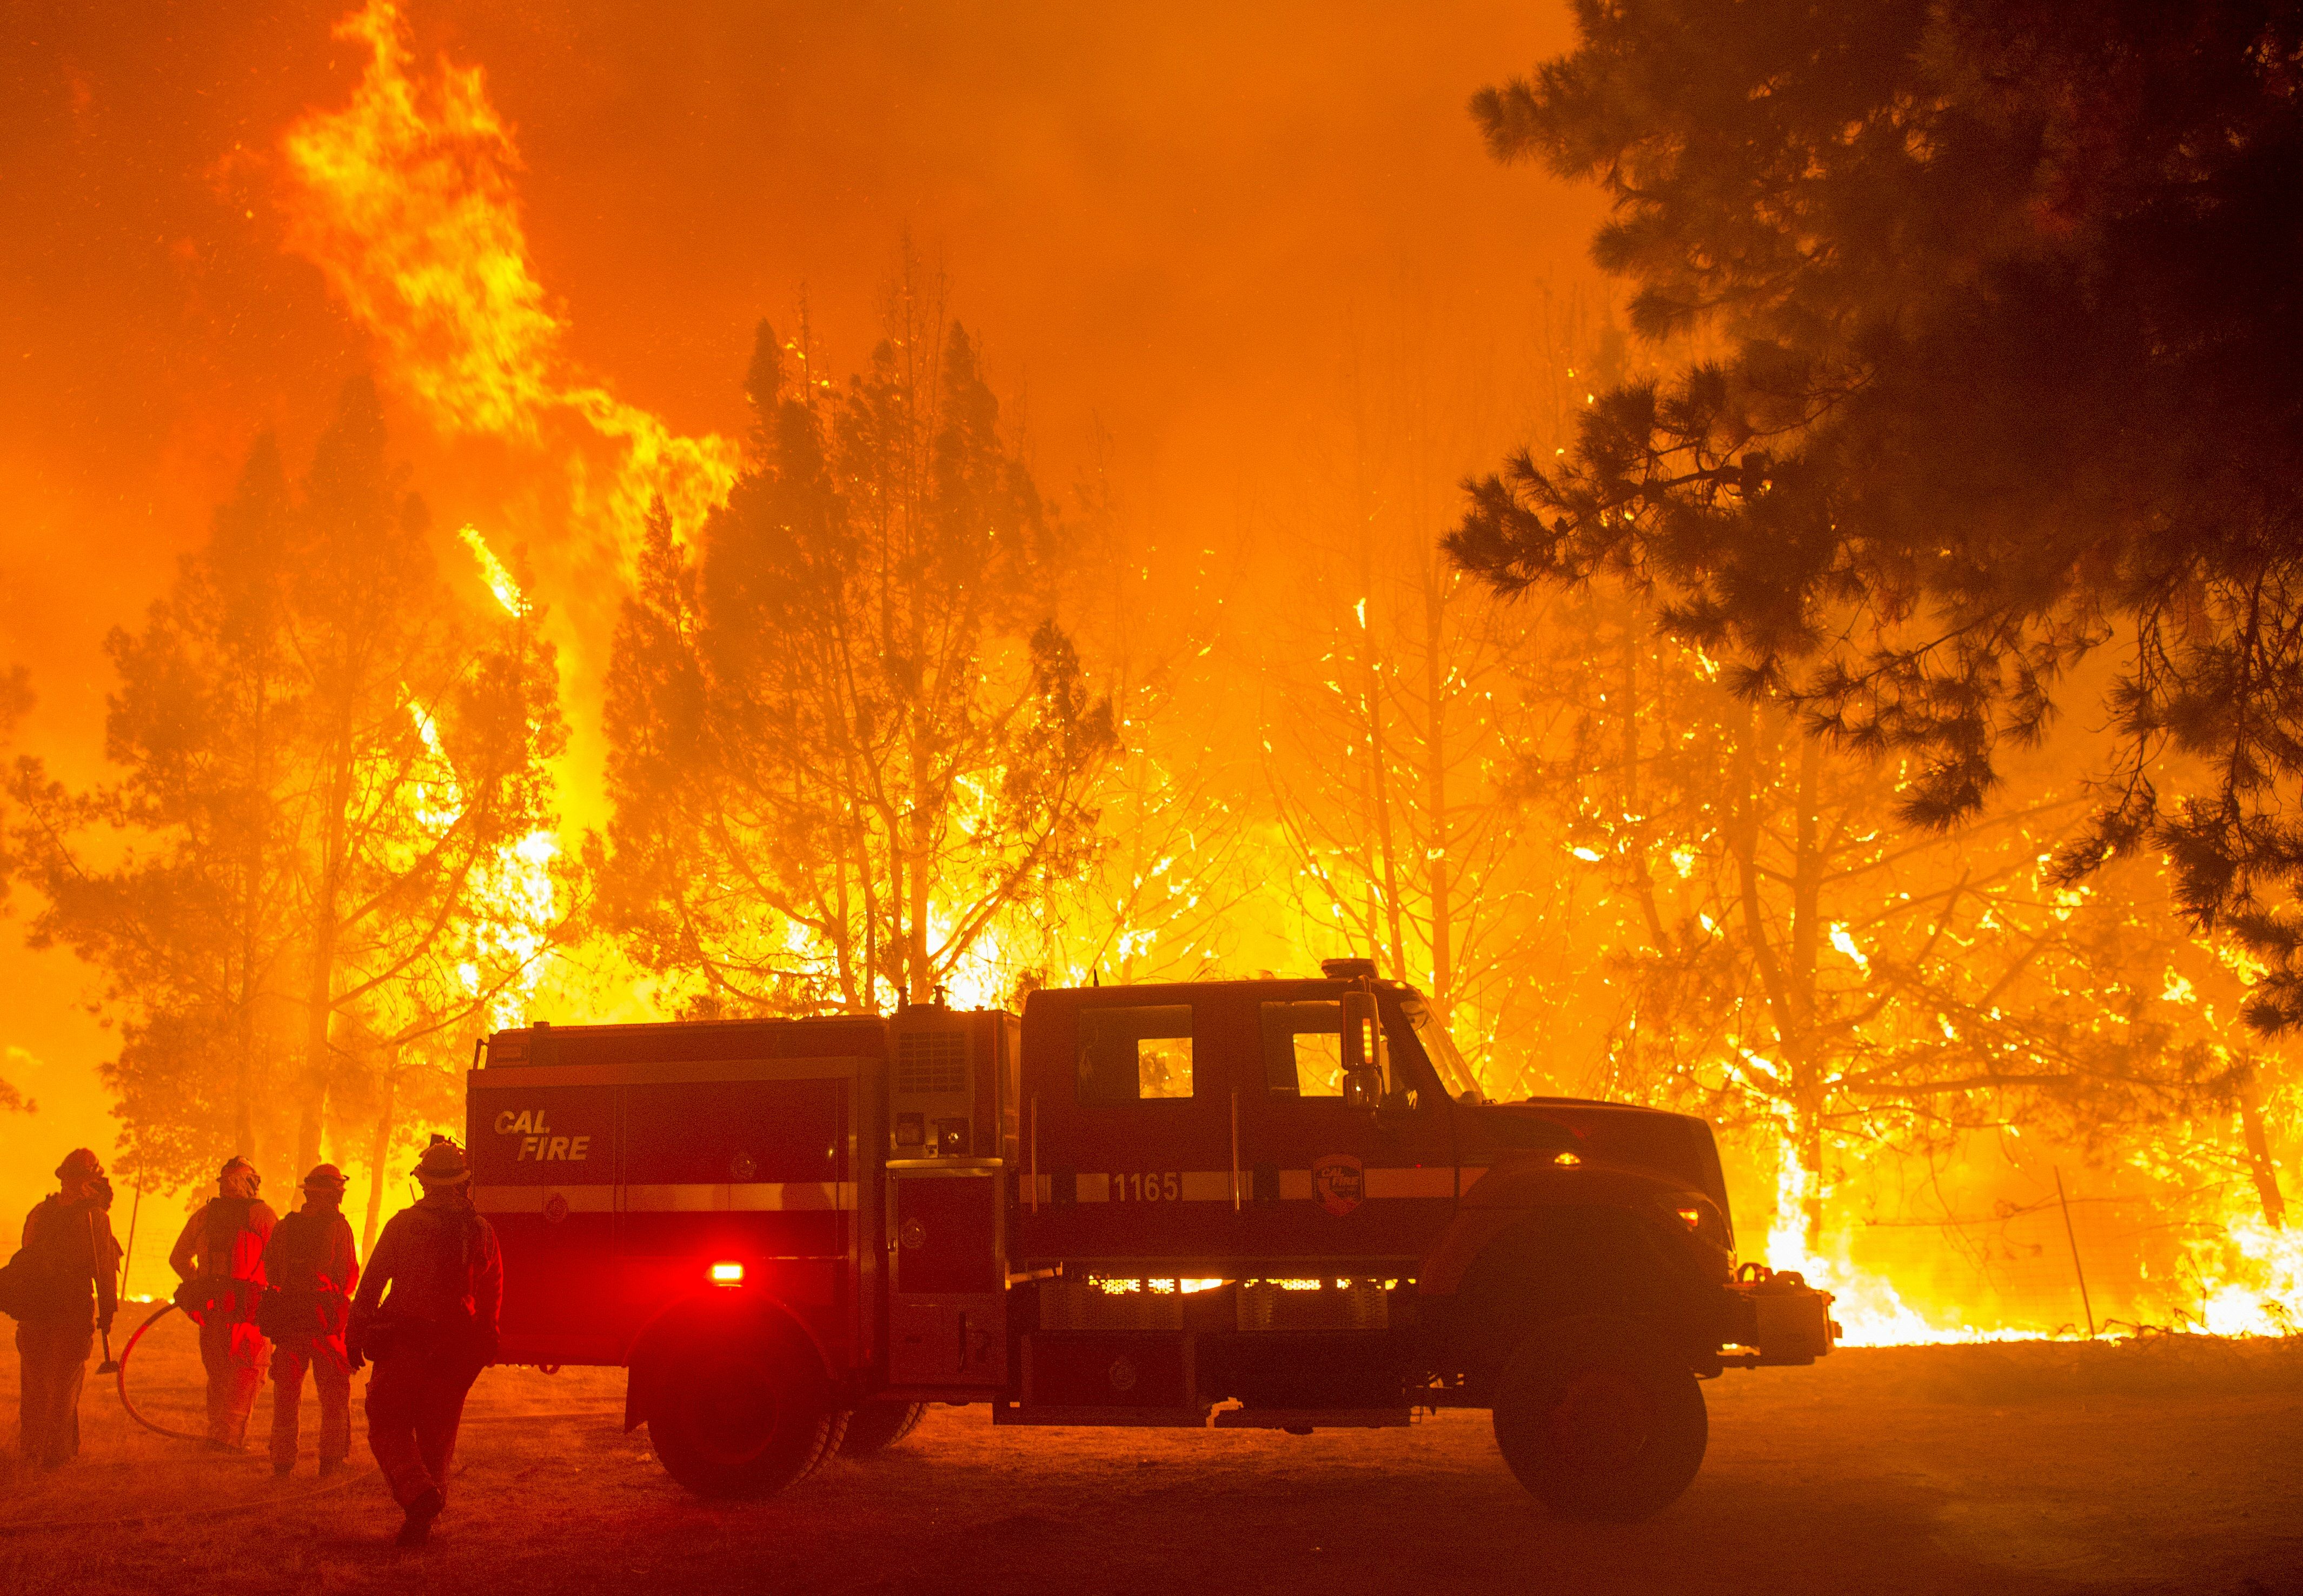 Study: Decreasing Number of Rainy Days in Summer Has Increased Western Wildfire